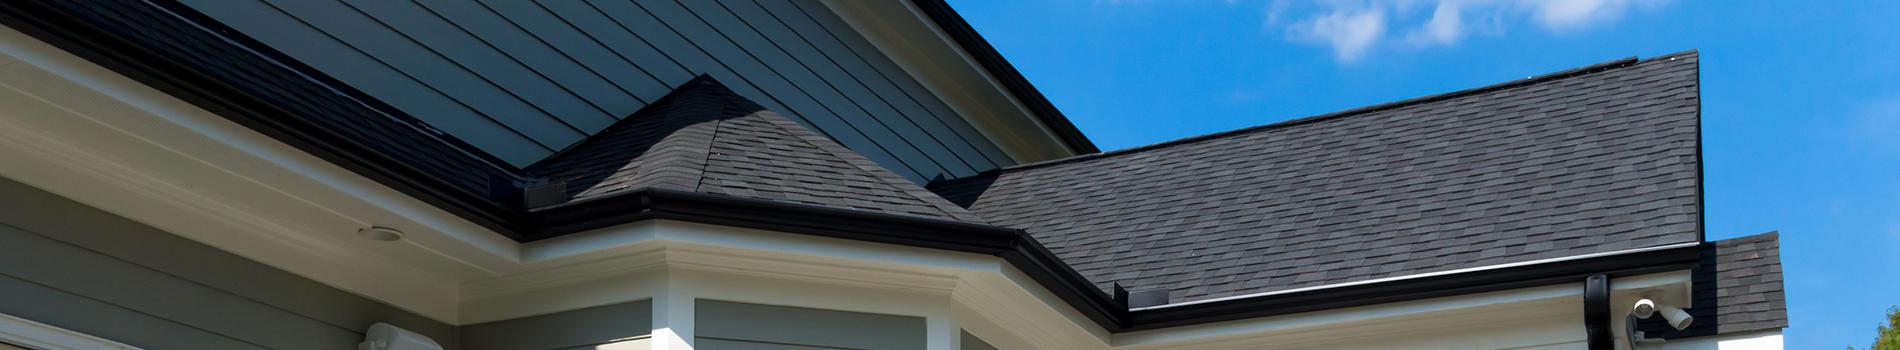 Gutters and Carpentry Services in the Greater Houston, Texas Area